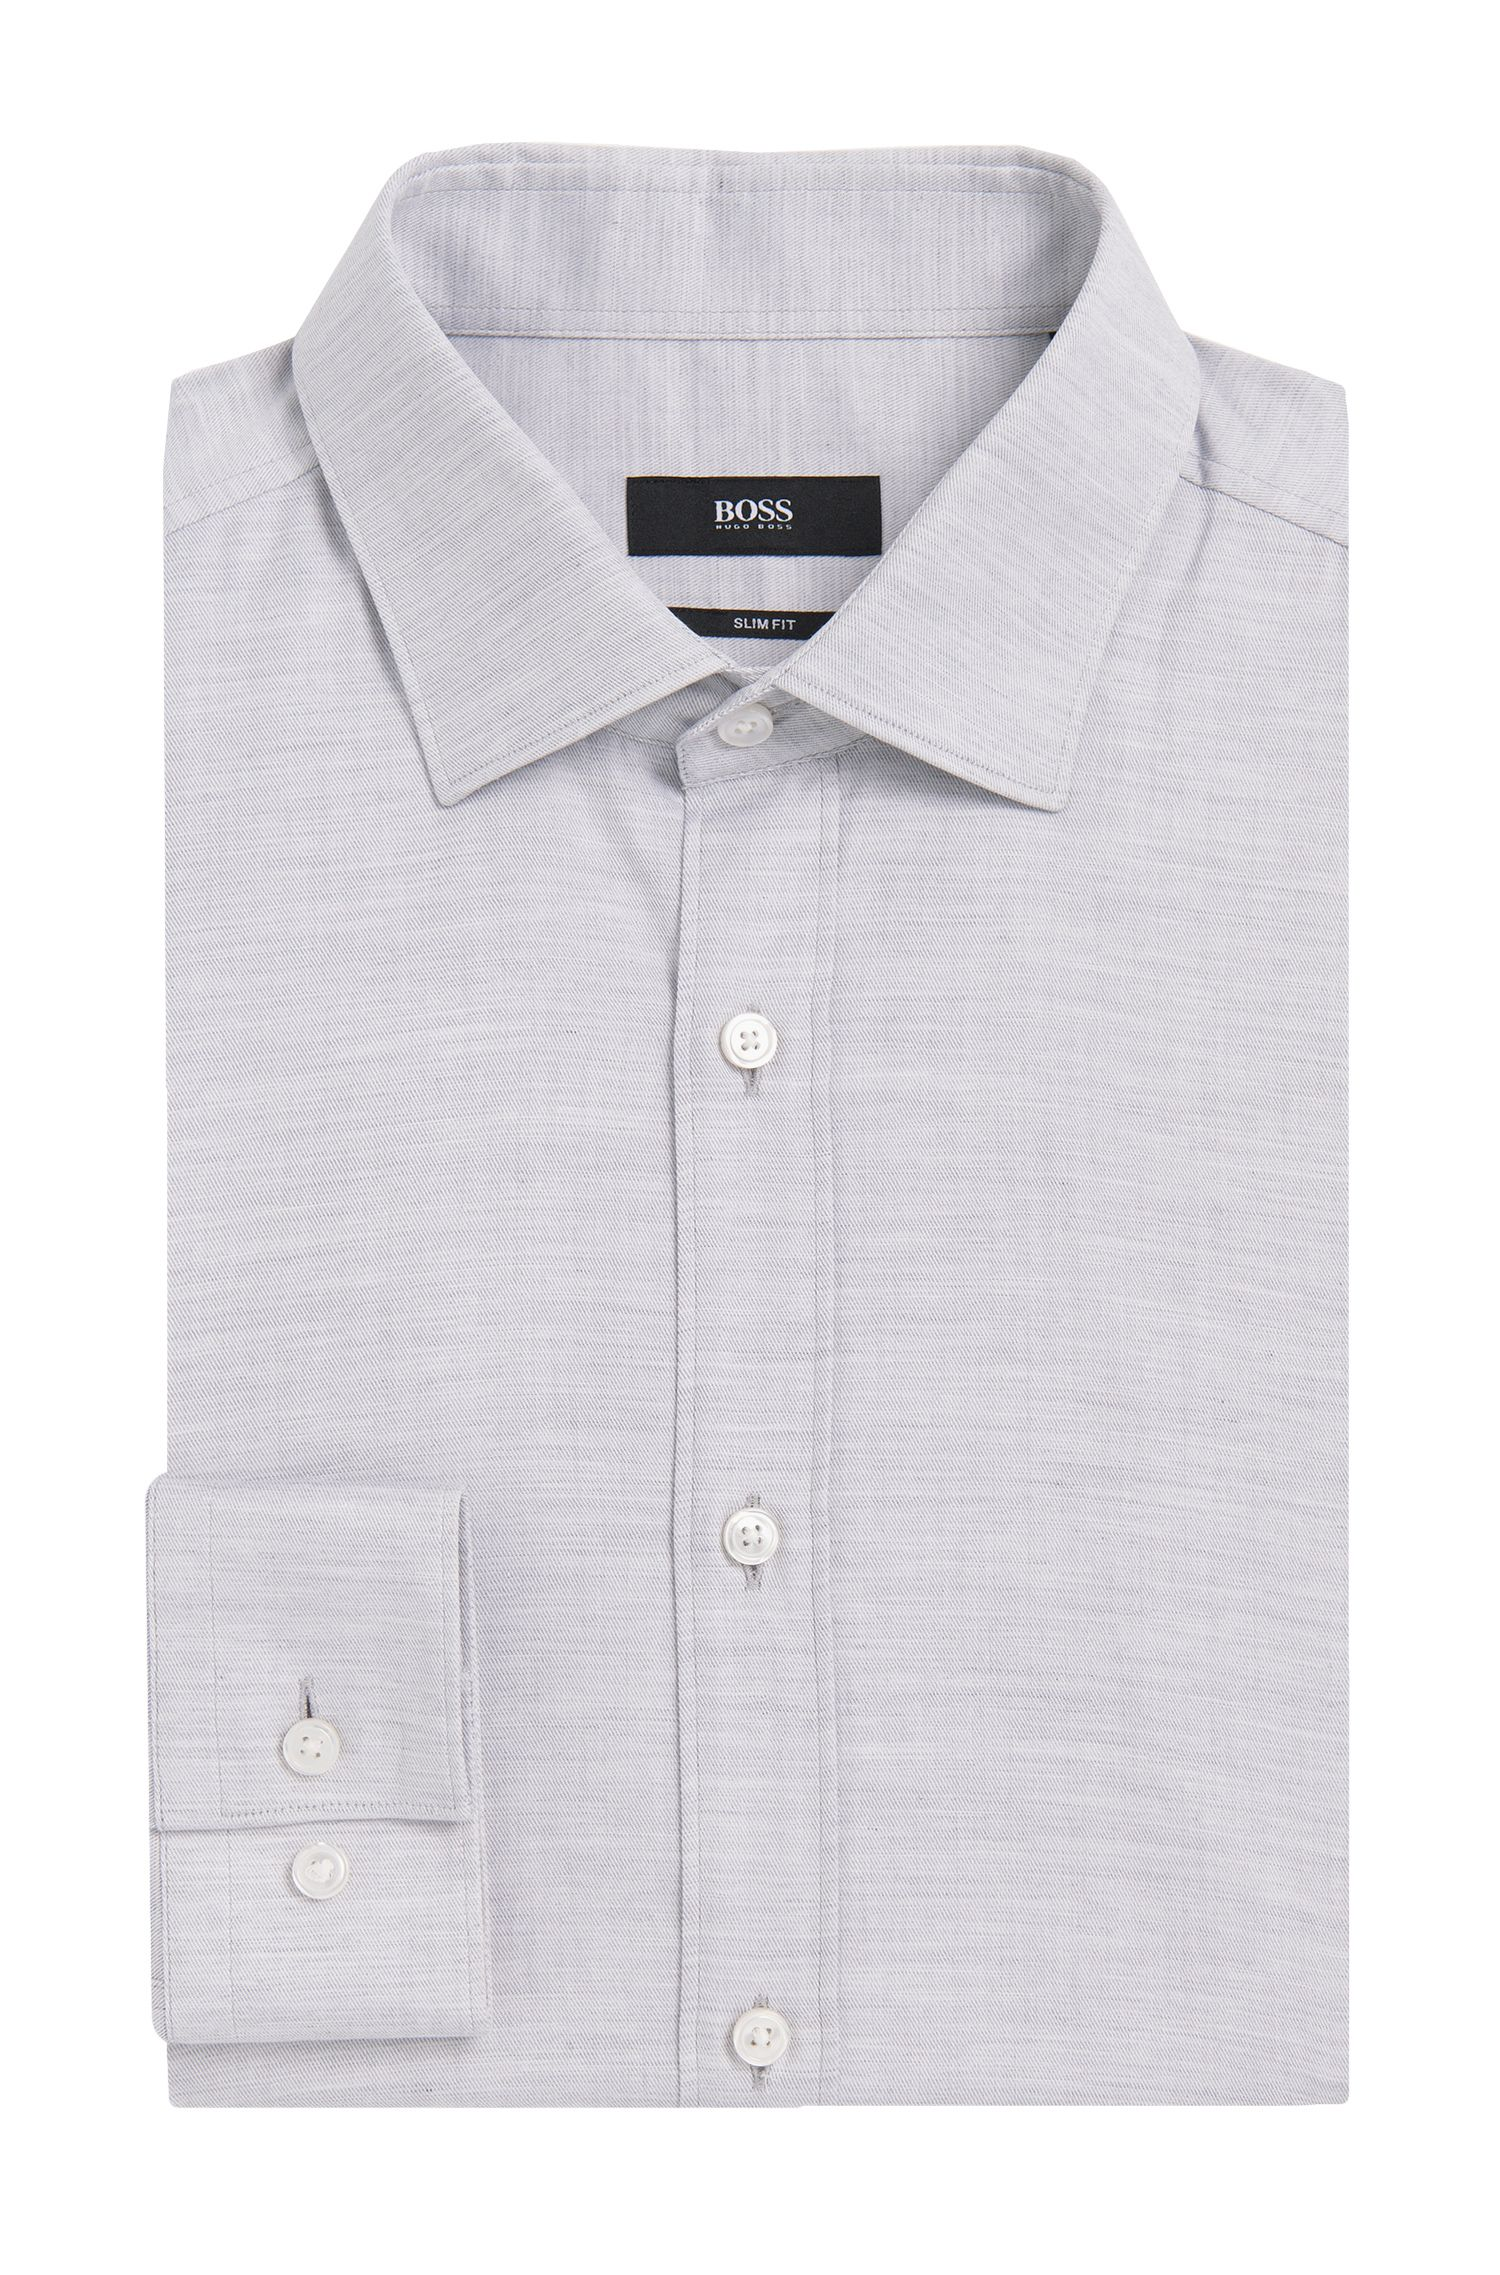 'Isaak' | Slim Fit, Italian Cotton Melange Dress Shirt